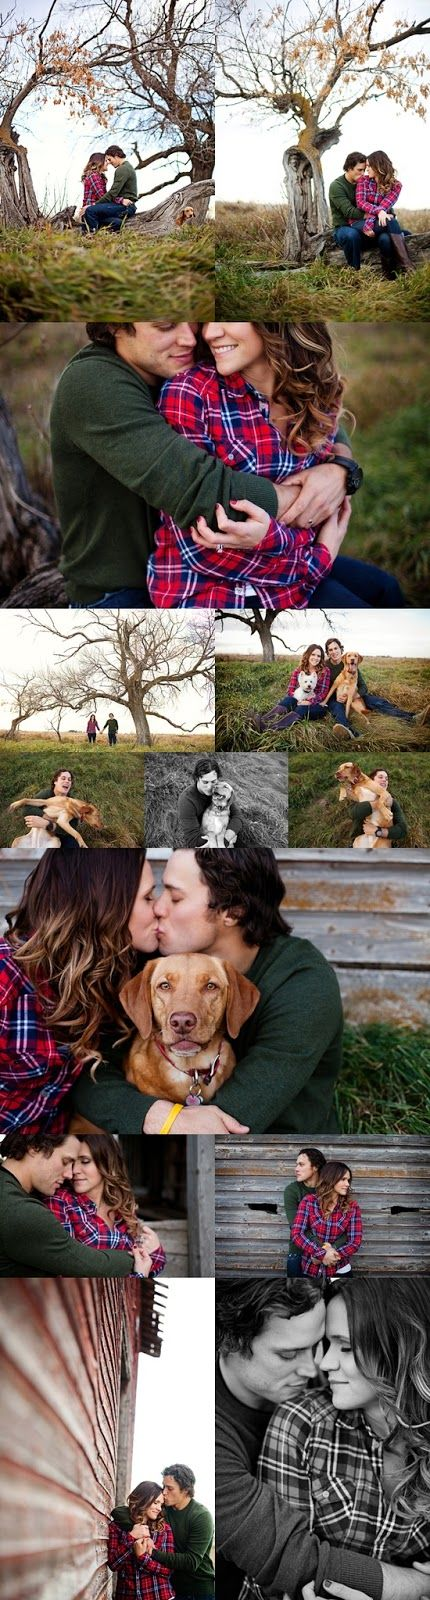 Inspiration for a cute, cozy country engagement shoot!